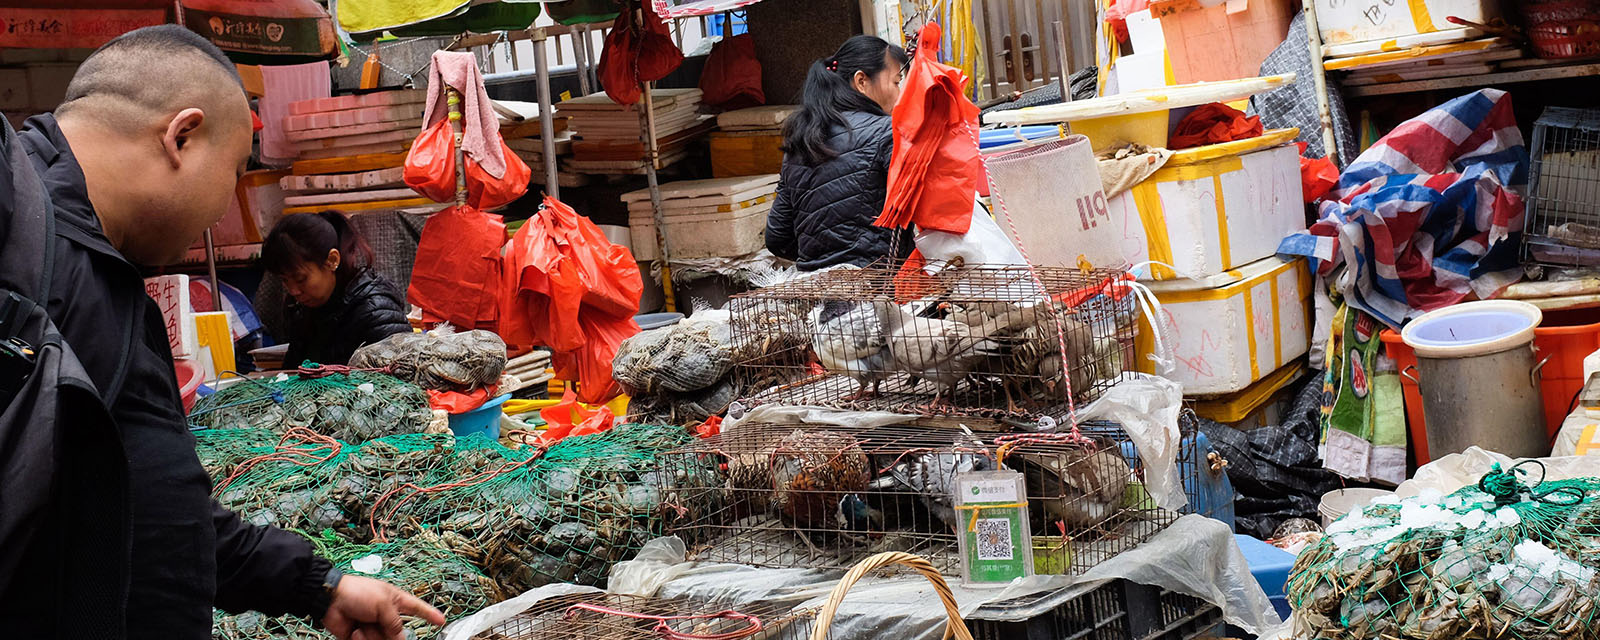 Live birds and eggs for sale at a market in Xiamen (Amoy), China